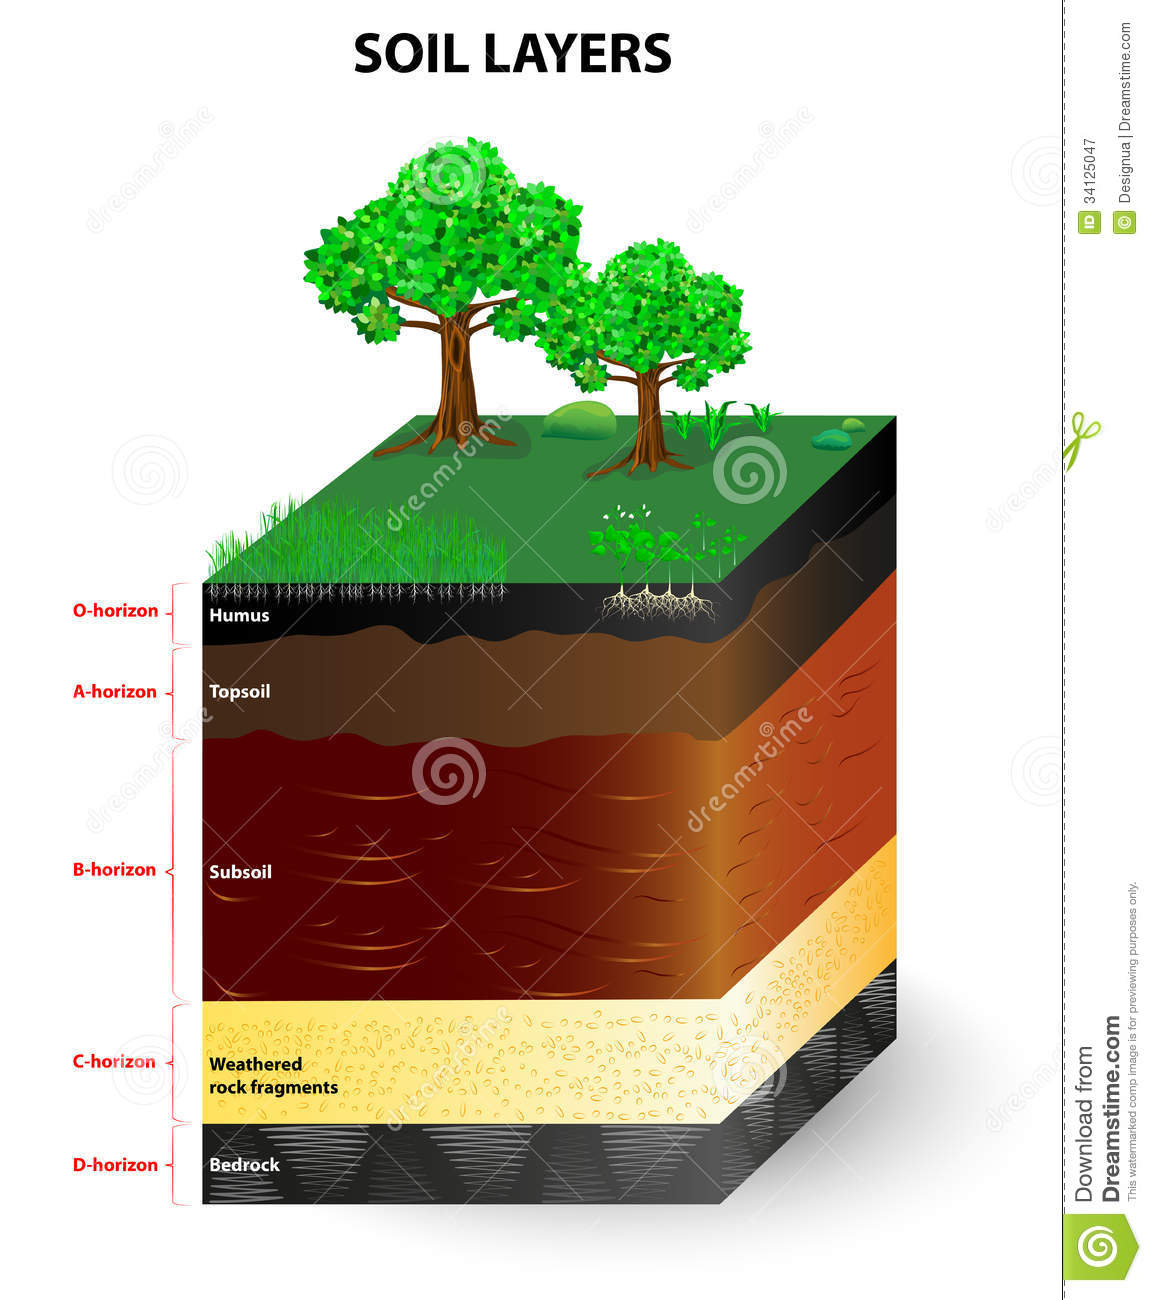 Layers Of A Soil Profile Stock Vector Illustration Of